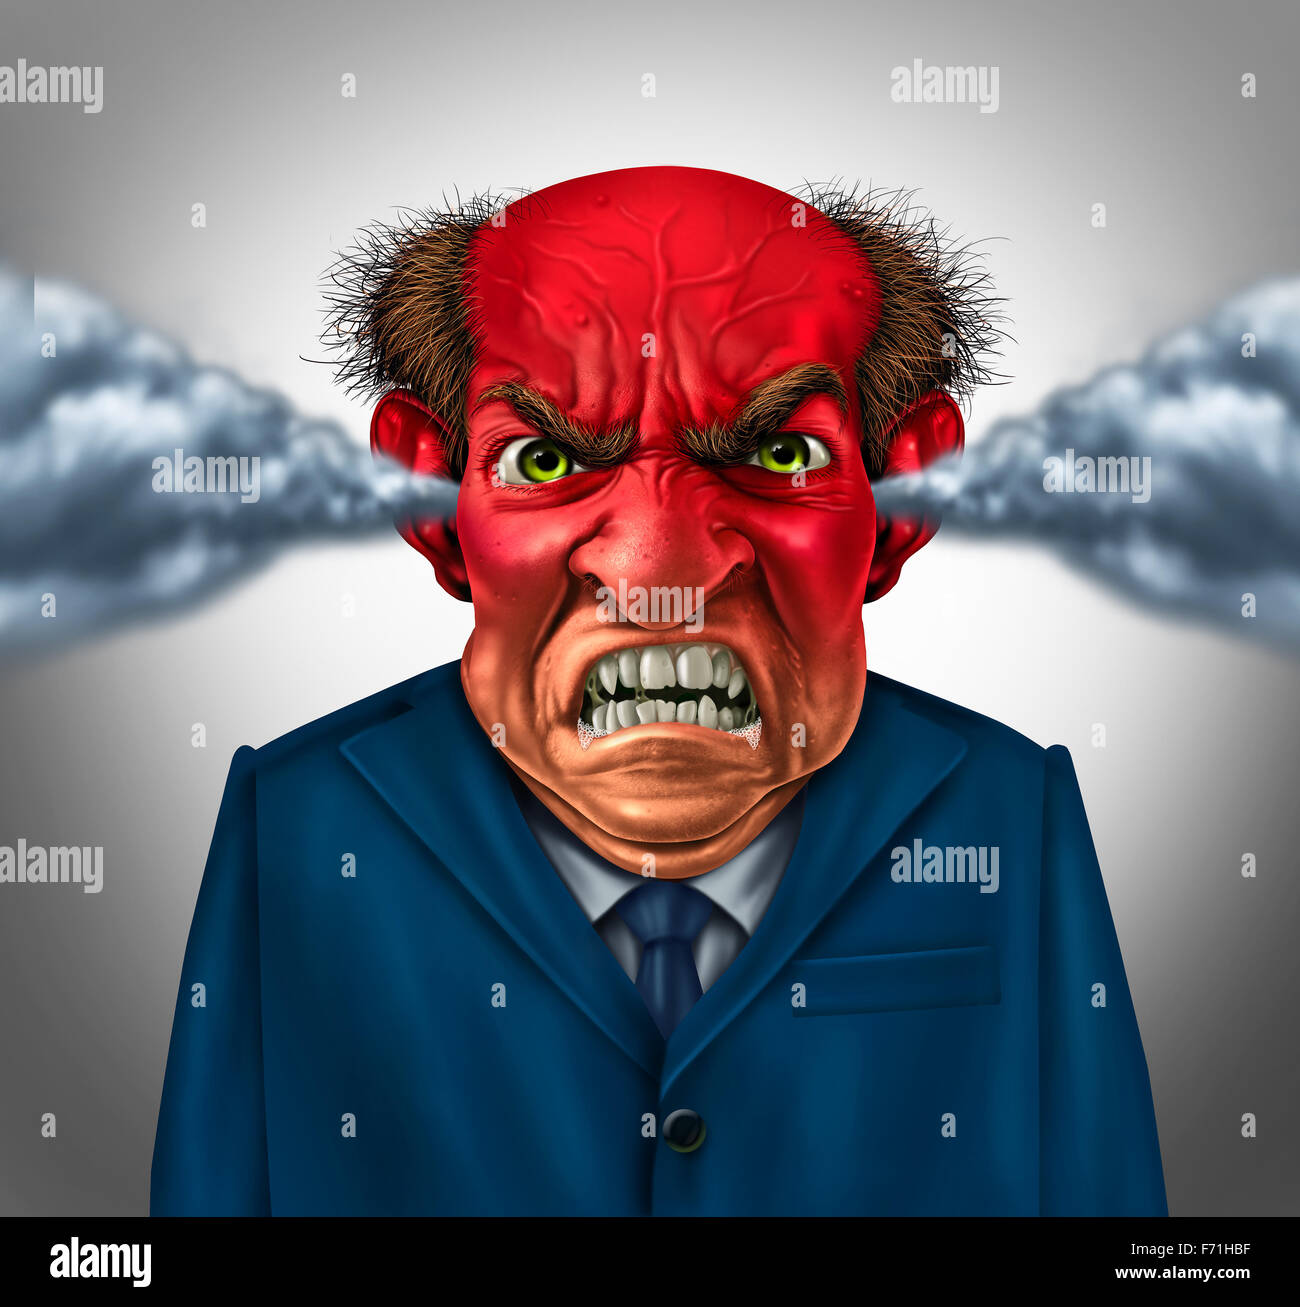 Foaming At The Mouth High Resolution Stock Photography and Images - Alamy